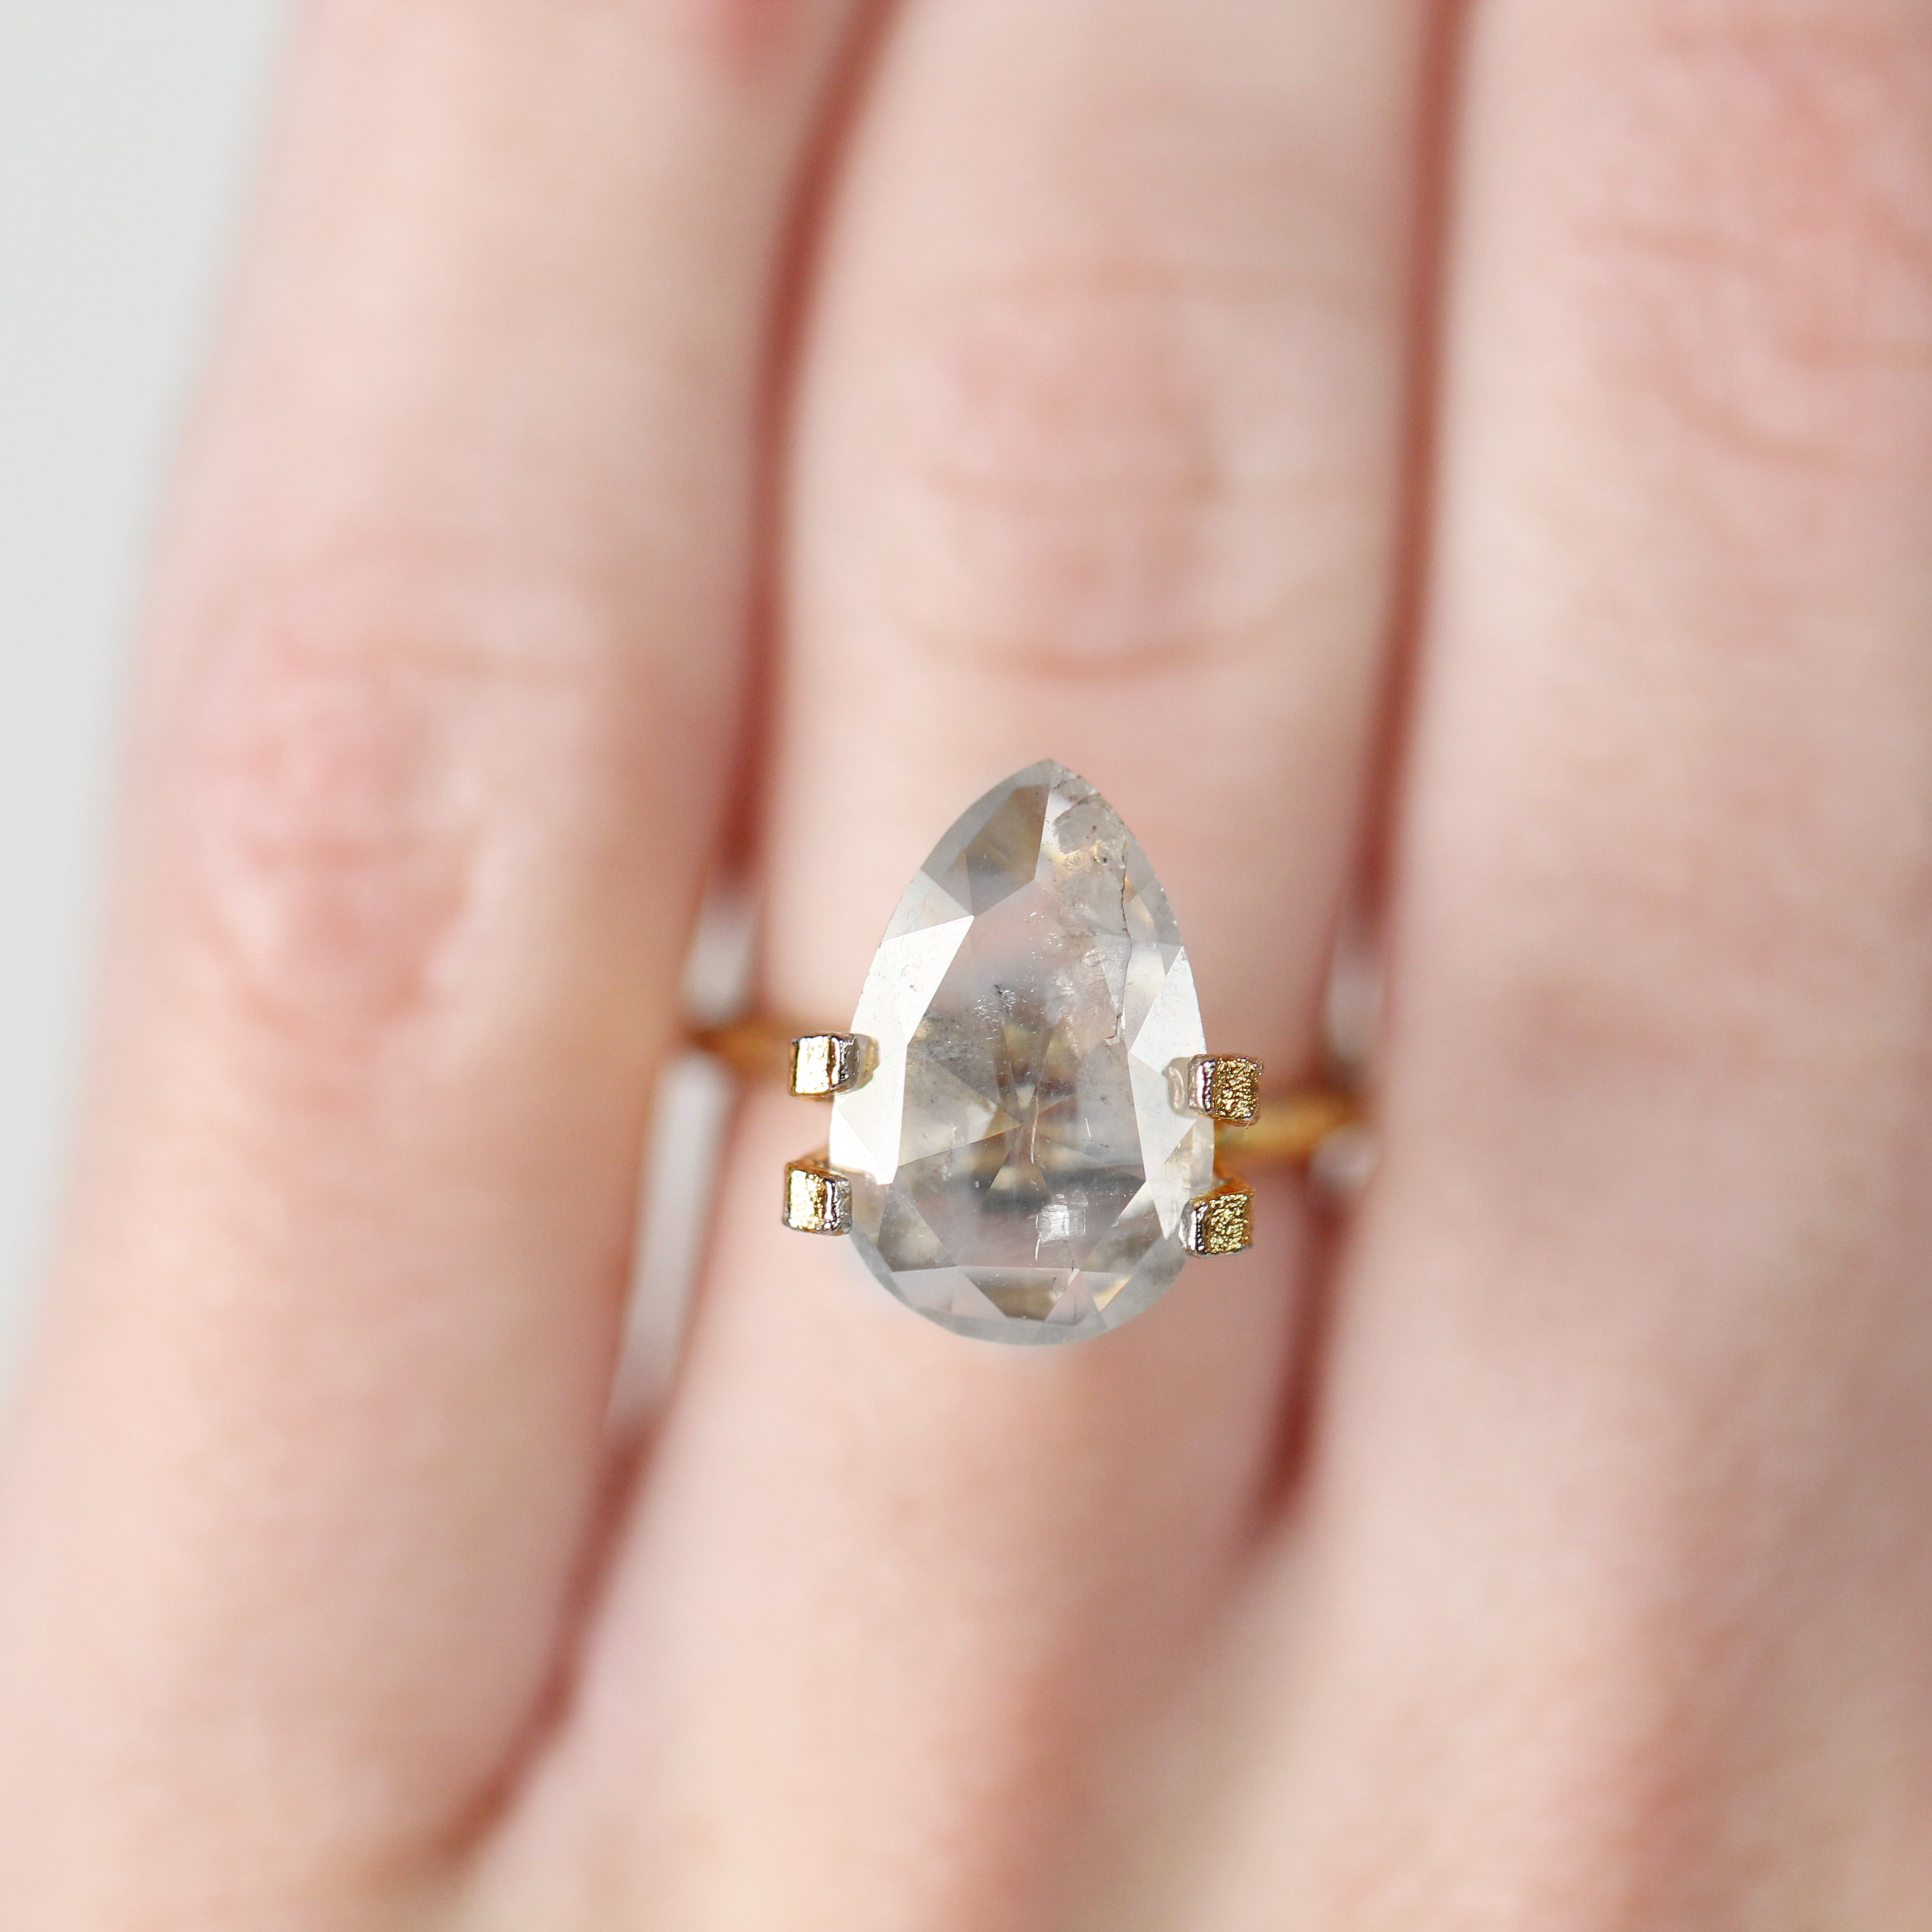 3.62 Carat Pear Celestial Diamond- Inventory Codee PRC362 - Celestial Diamonds ® by Midwinter Co.